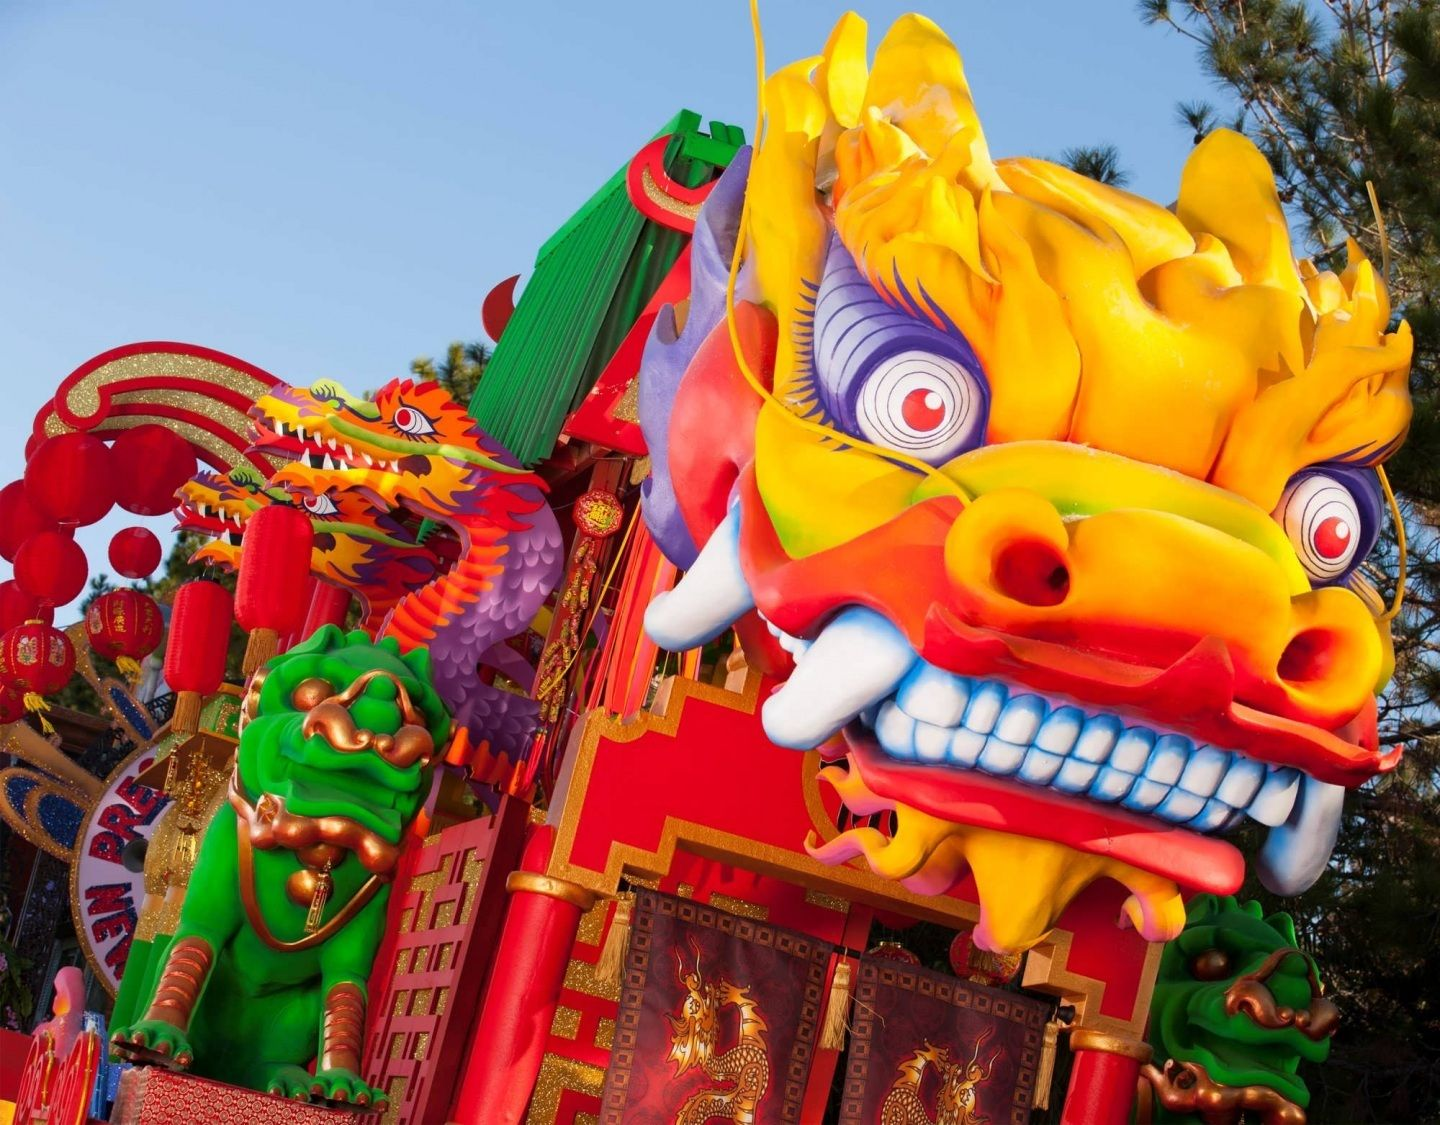 Chinese New Year Dragon Costume Dragon Cloudpix Parade Float Chinese New Year Dragon Mardi Gras Parade Float